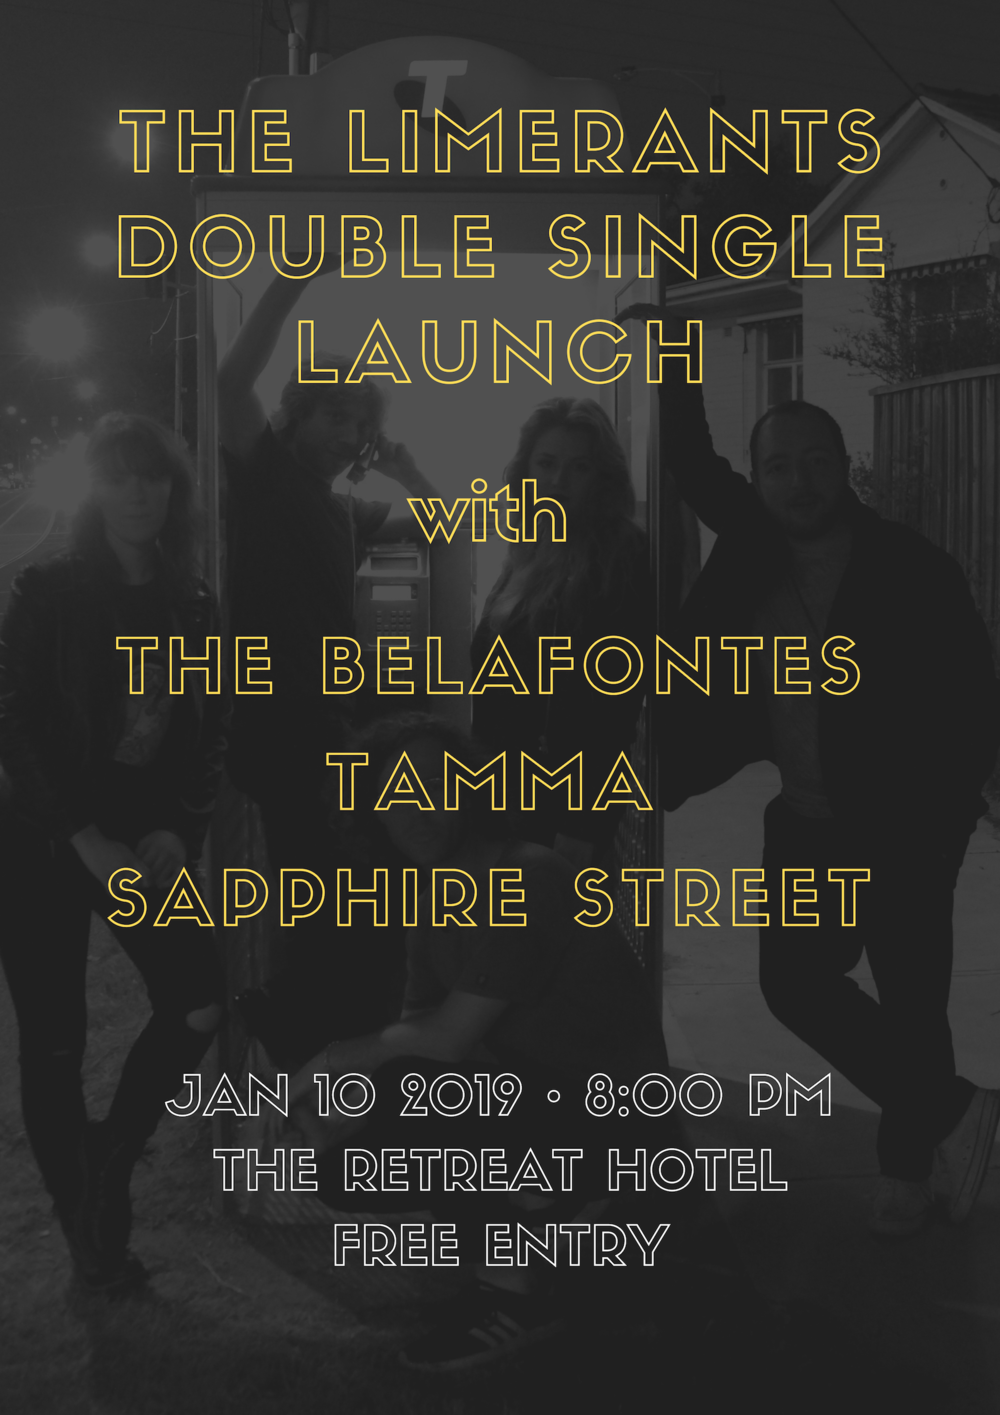 Limerants DoubLe Single Launch Poster 10.1.19 (1).png